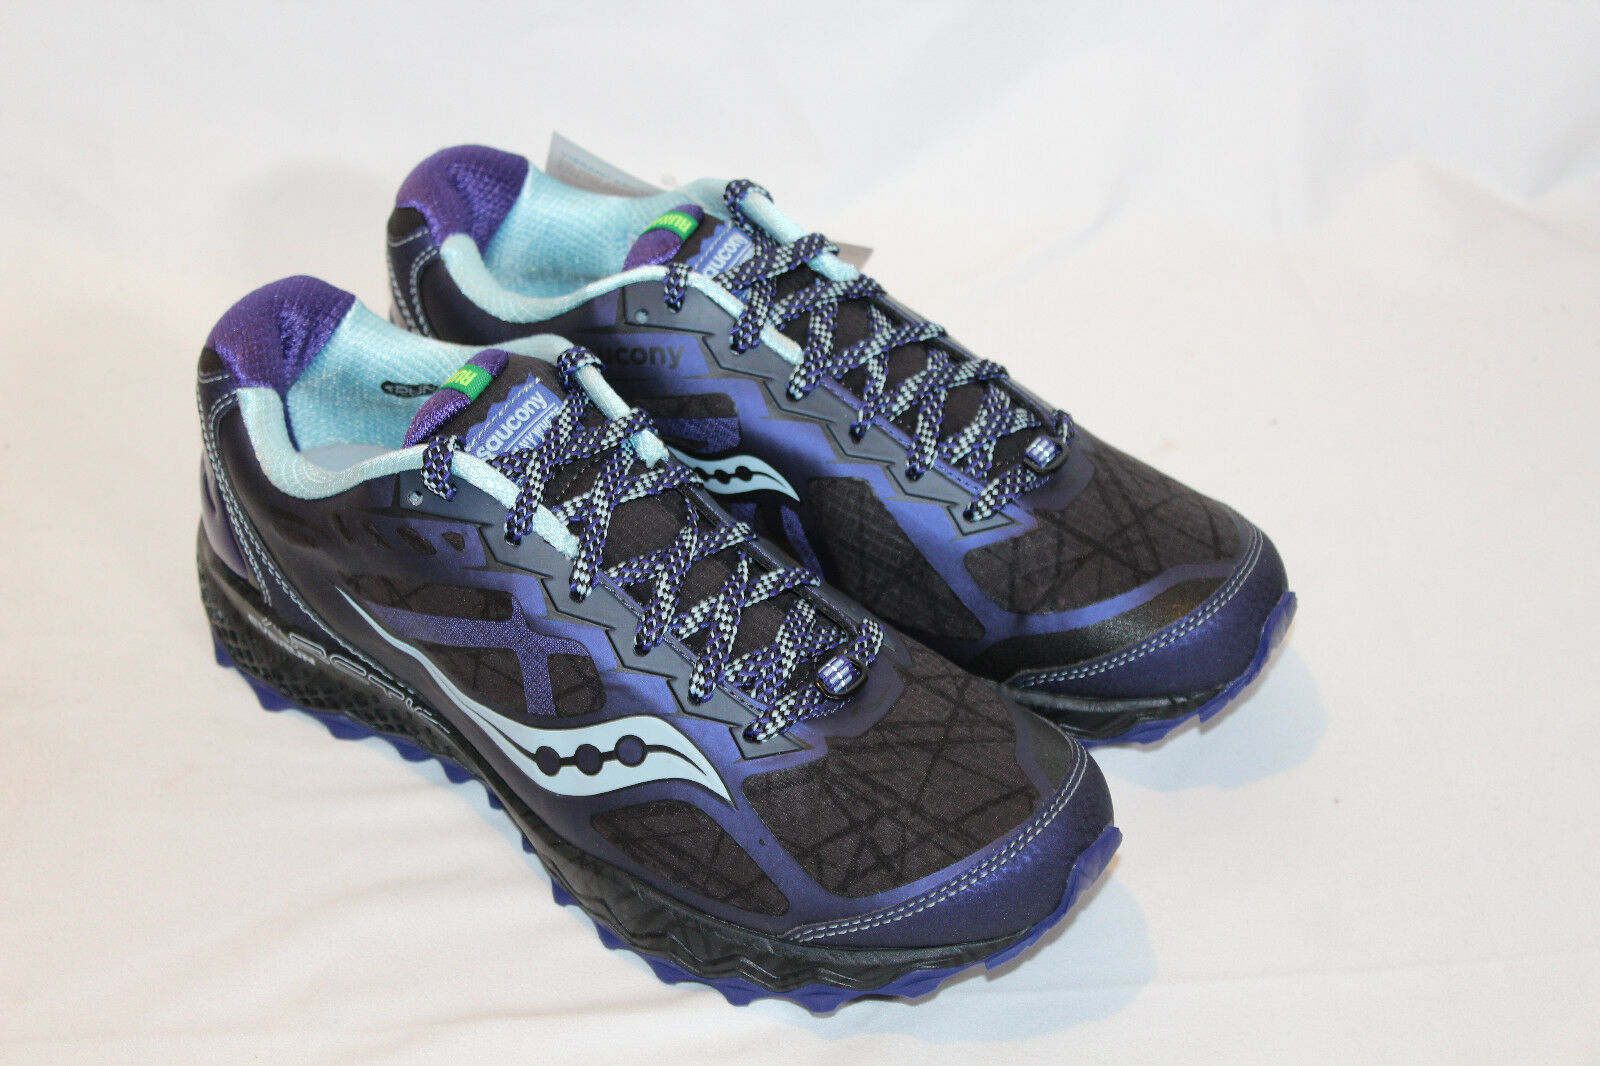 Saucony peregrine 6 ice athletic chaussures pick Taille Couleur new with box